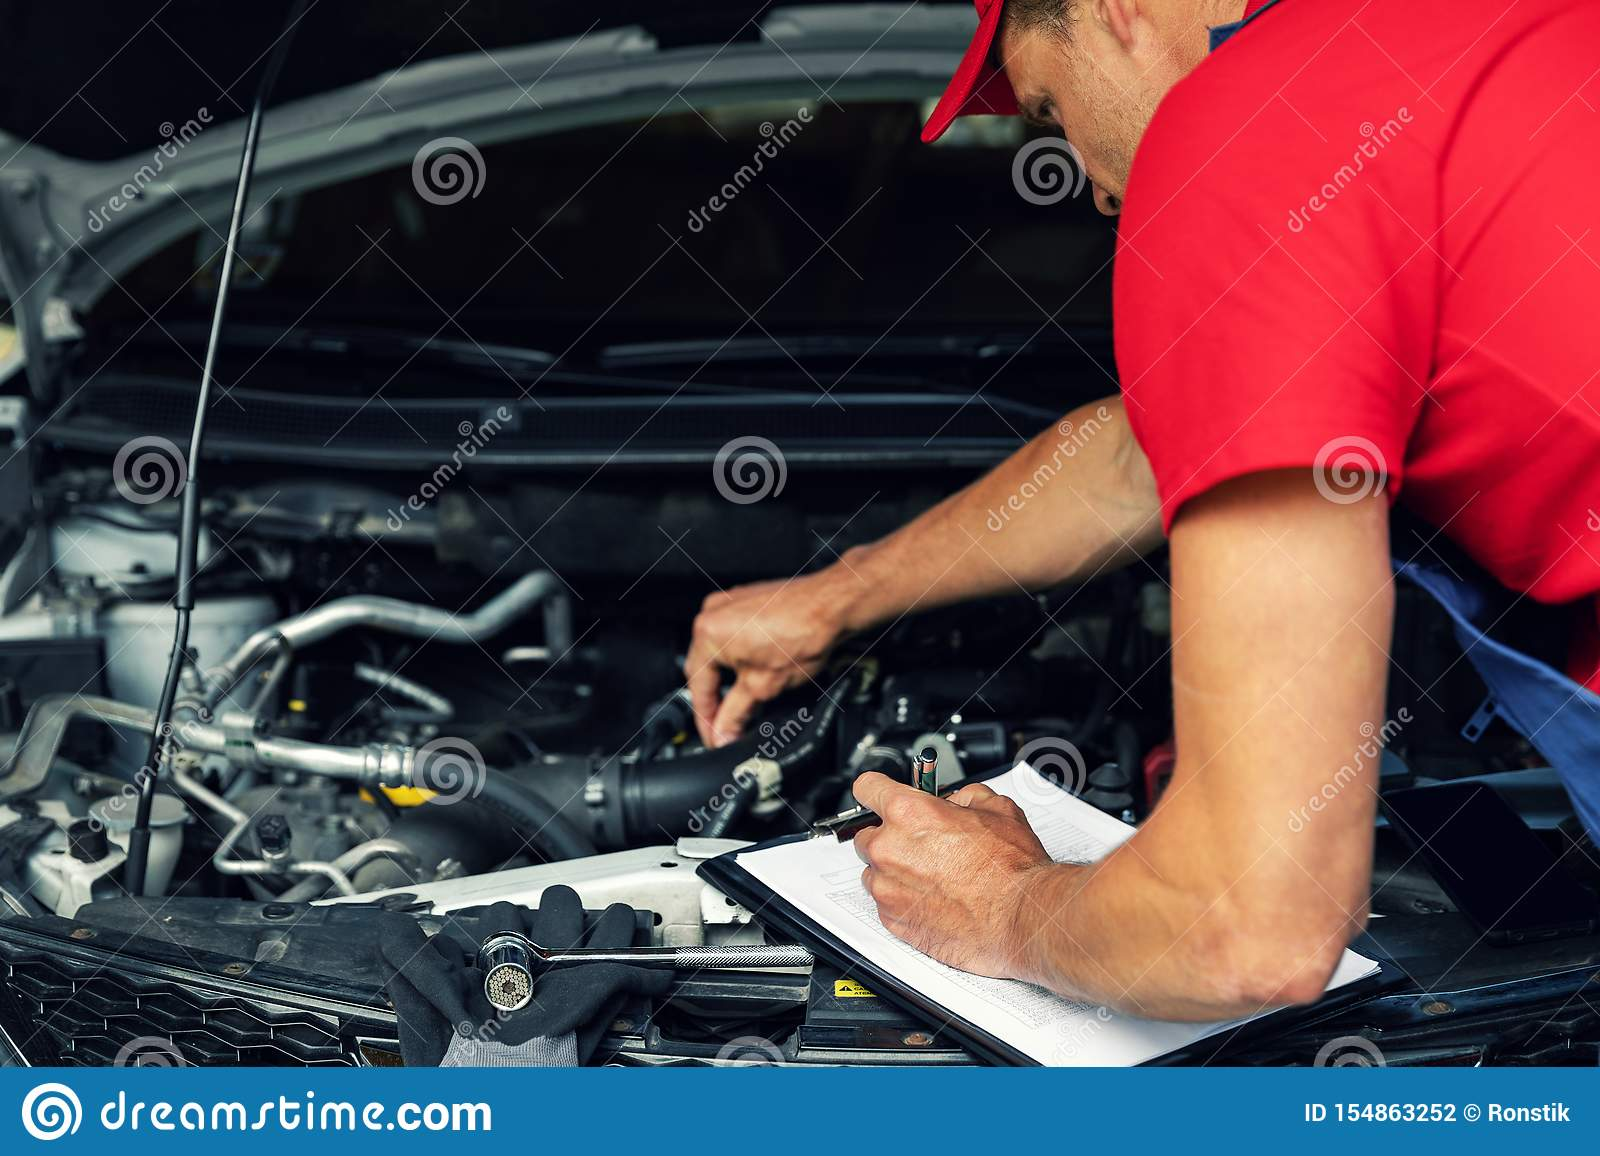 Car maintenance - mechanic check the engine and writing in checklist